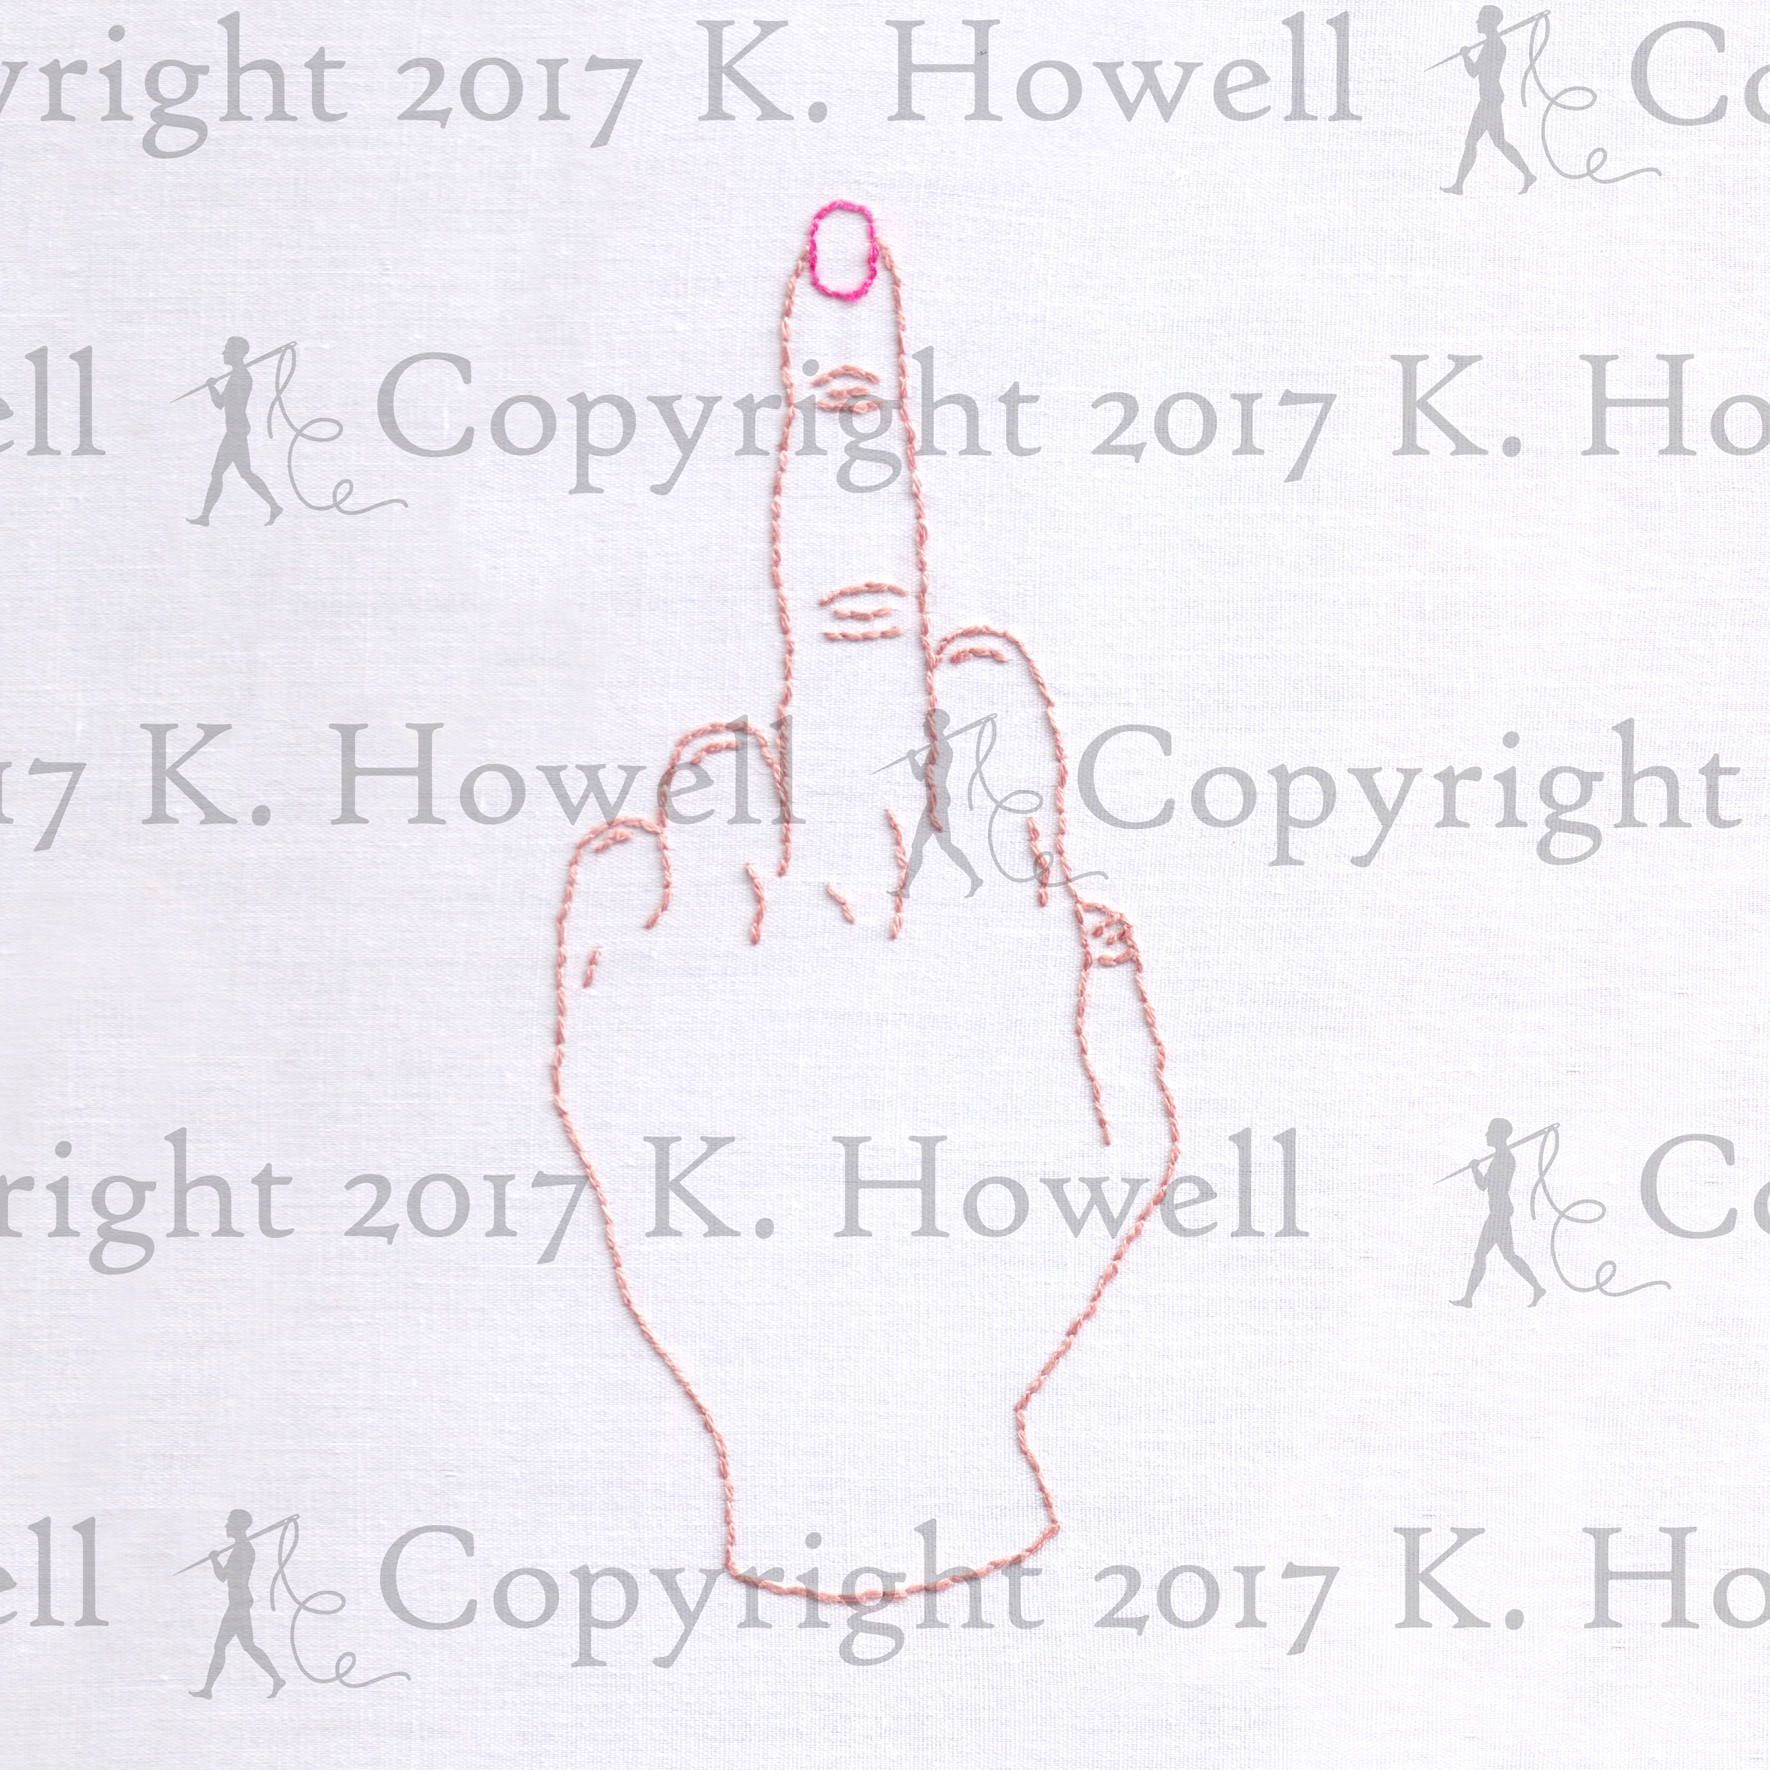 Thumbs up hand embroidery pattern hand gesture position symbol thumbs up hand embroidery pattern hand gesture position symbol fingers buycottarizona